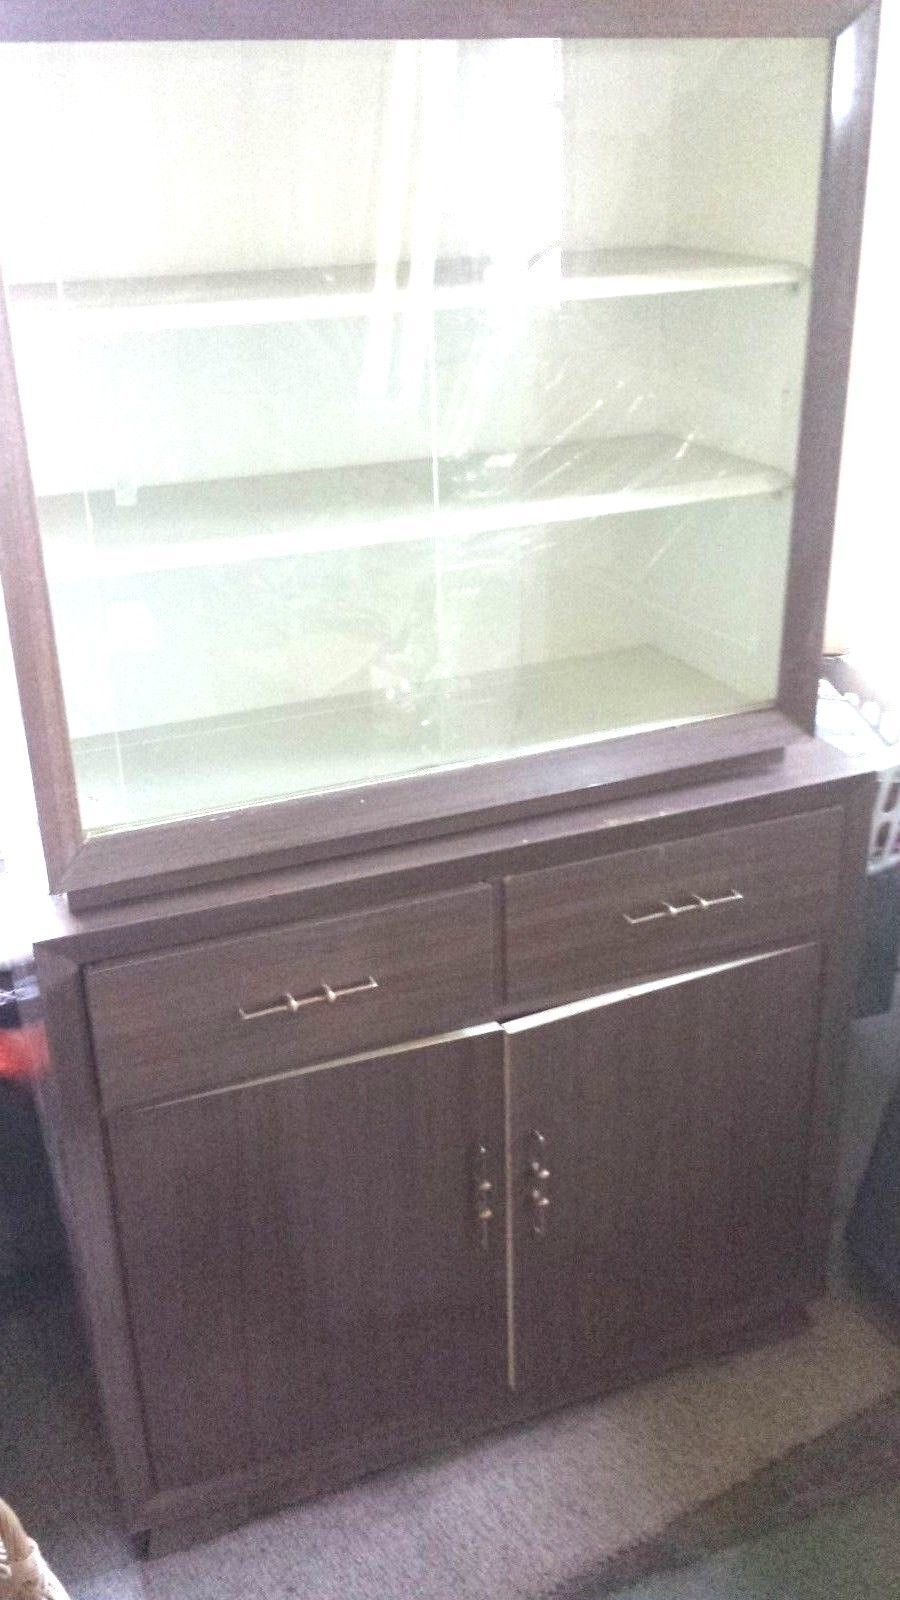 Wooden Cabinet with White Interior Shelves with Glass Sliding Door Drawer Set | eBay